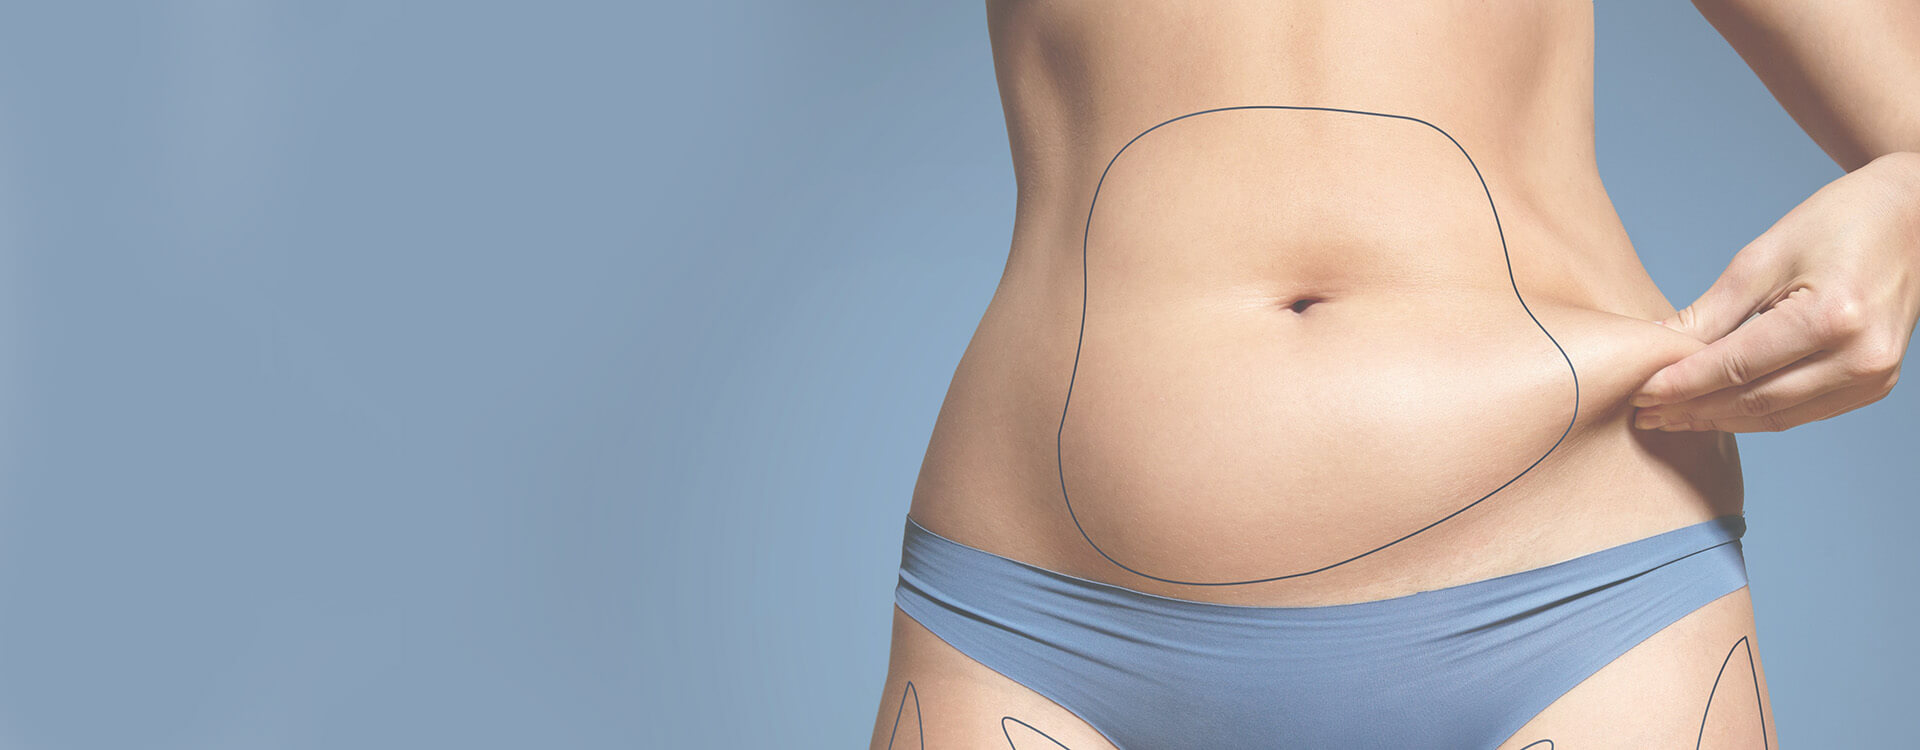 Dermatology CoolSculpting